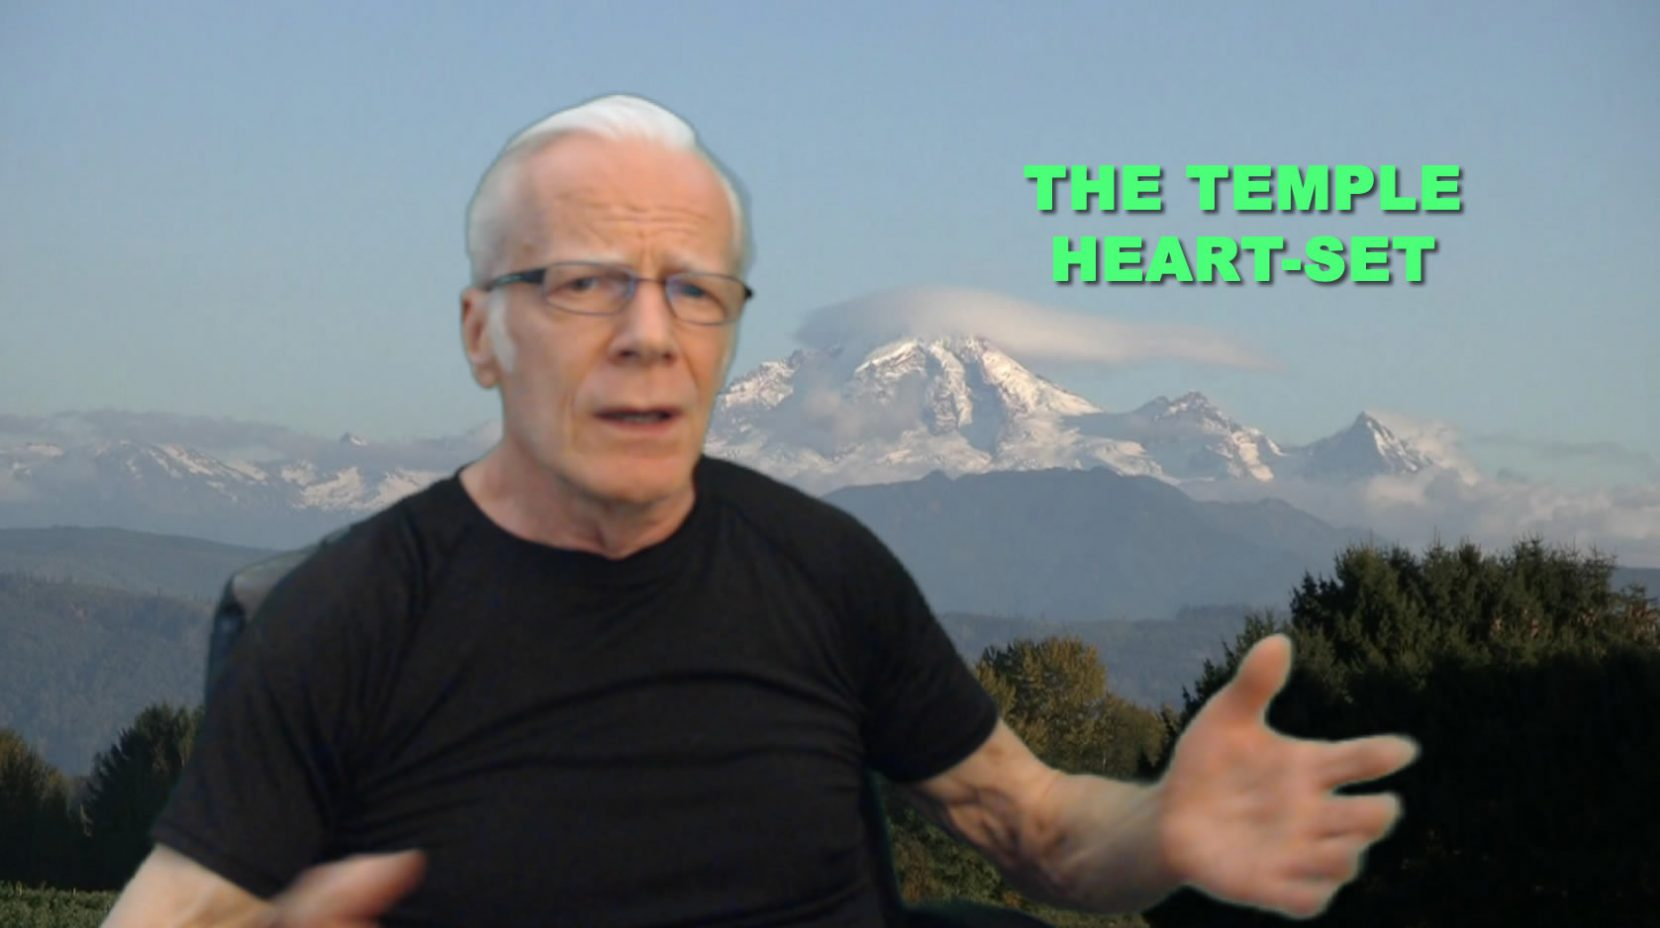 The Temple Heart-Set